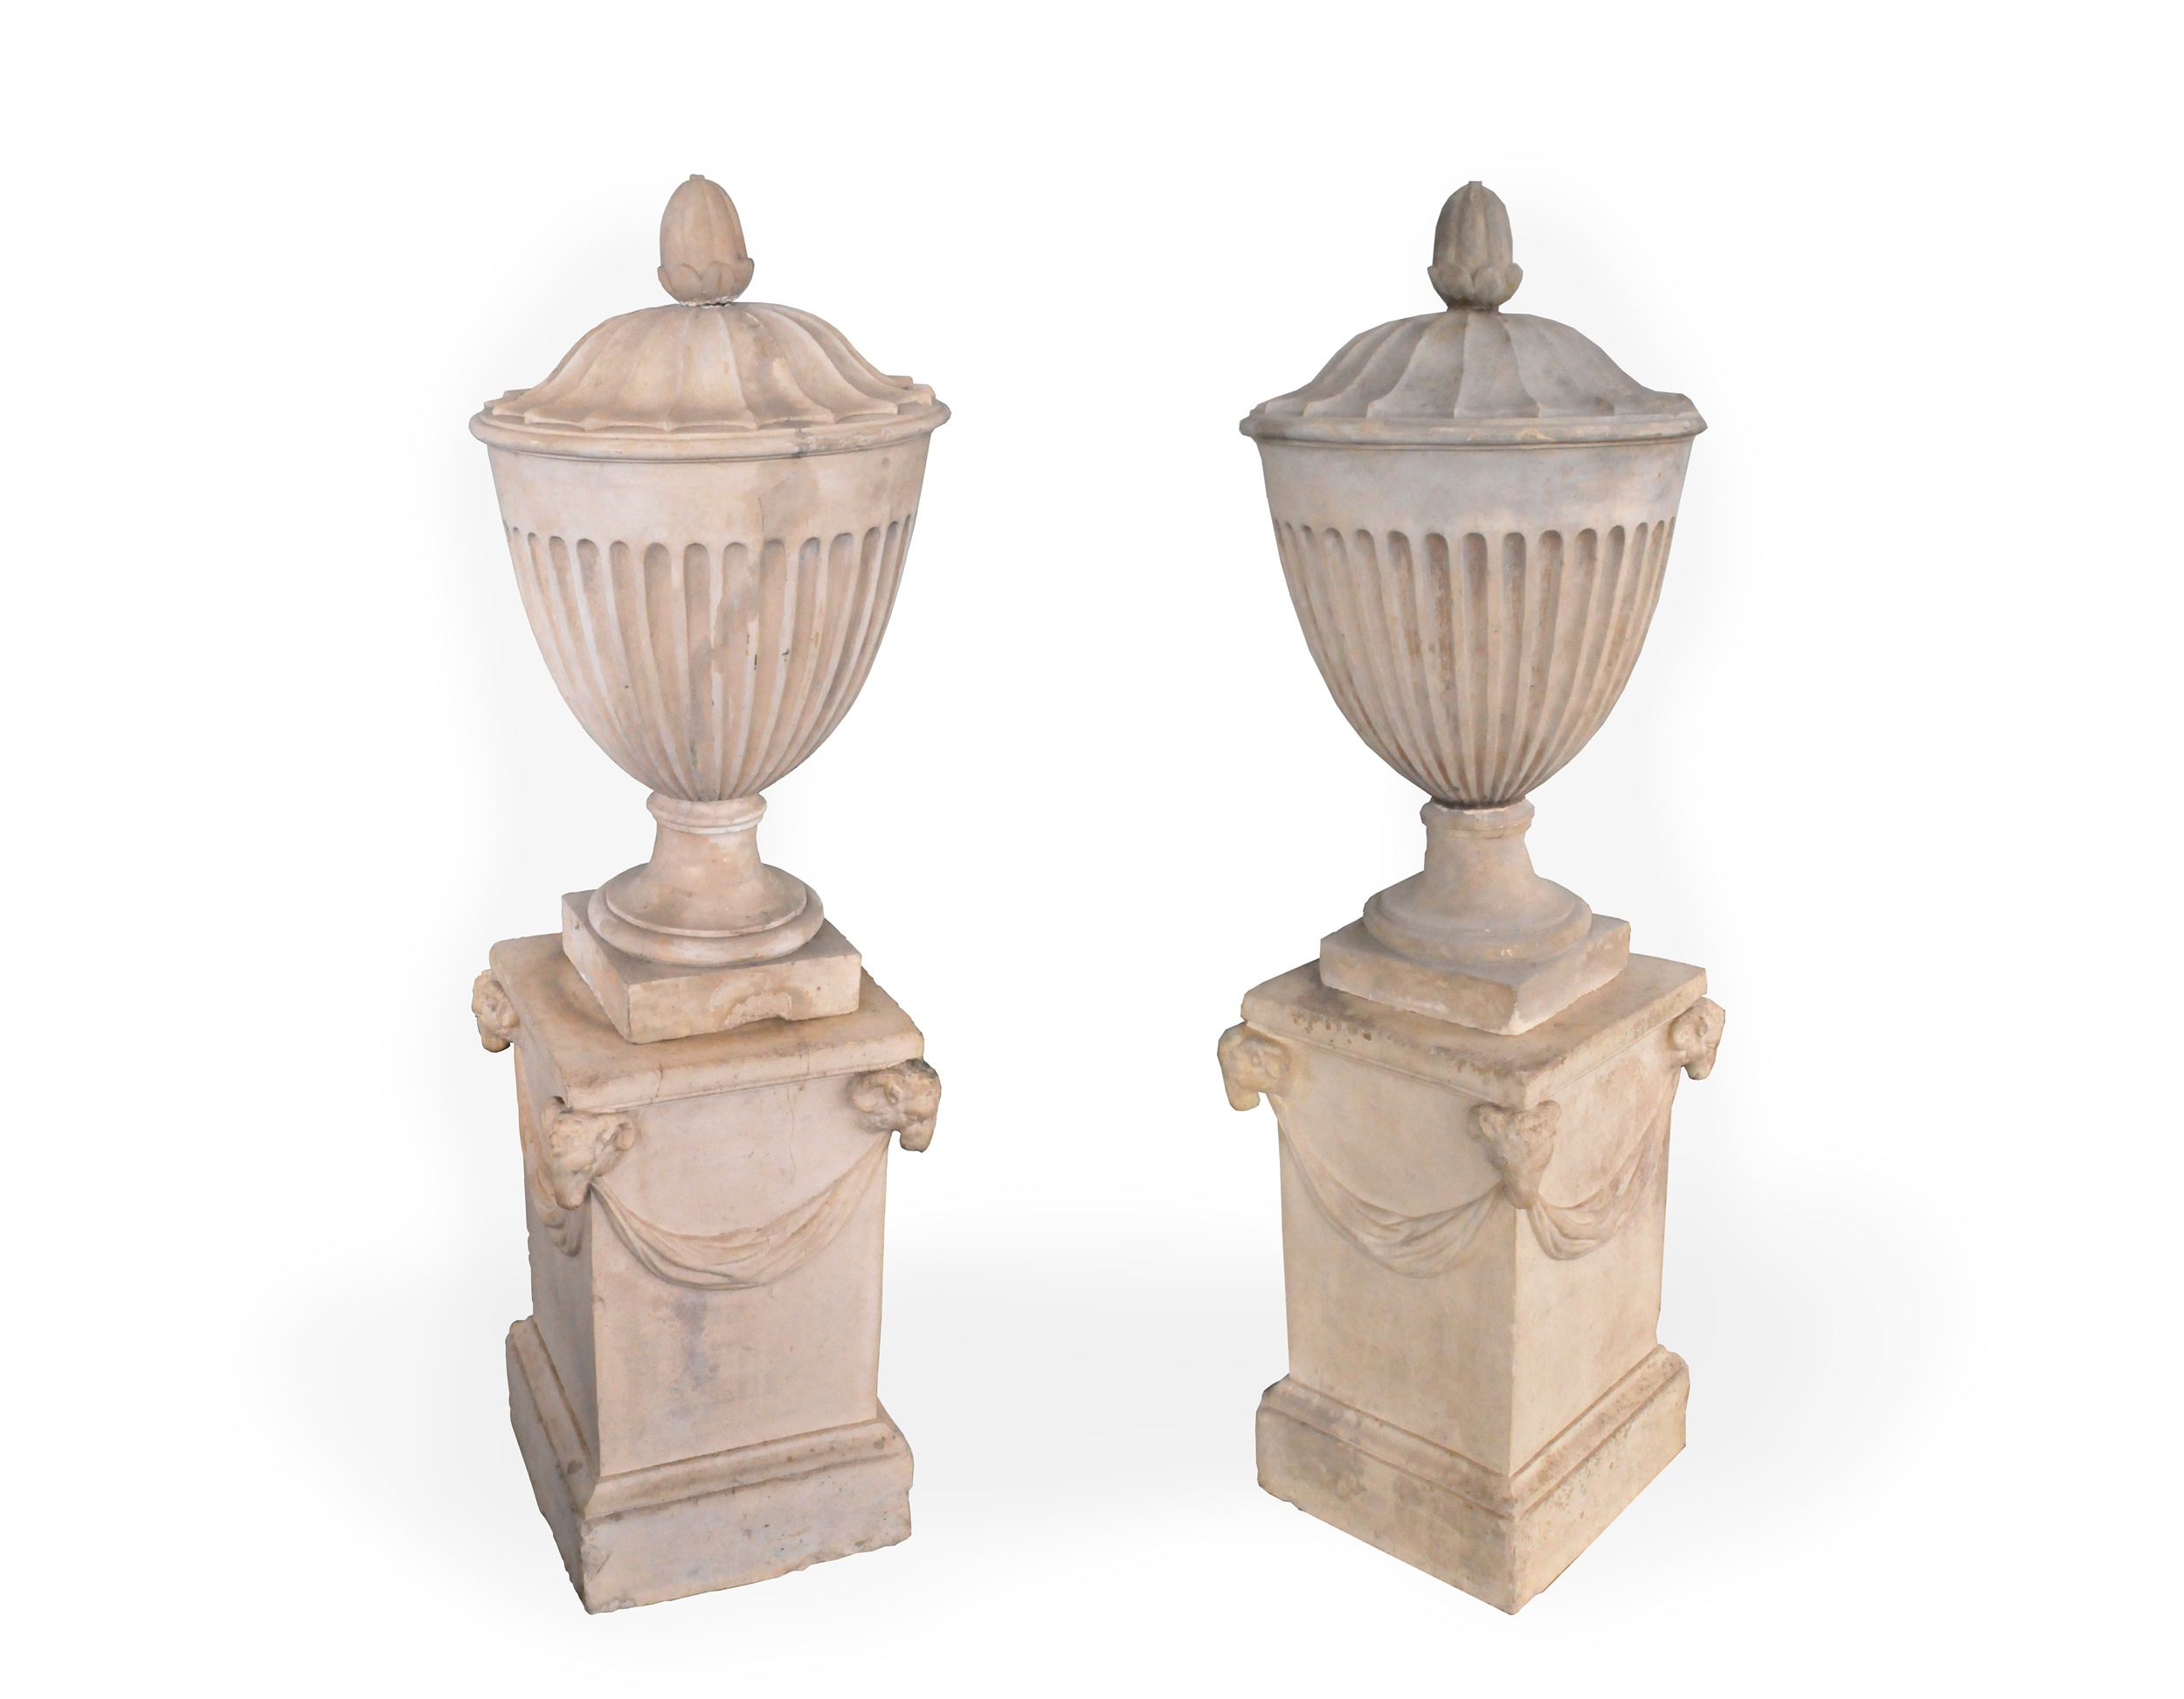 https://fineart.hallsgb.com/auction/lot/479-a-pair-of-coade-urns-with-bud-form-finials/?lot=126875&so=0&st=479&sto=0&au=269&ef=&et=&ic=False&sd=2&pp=24&pn=1&g=1